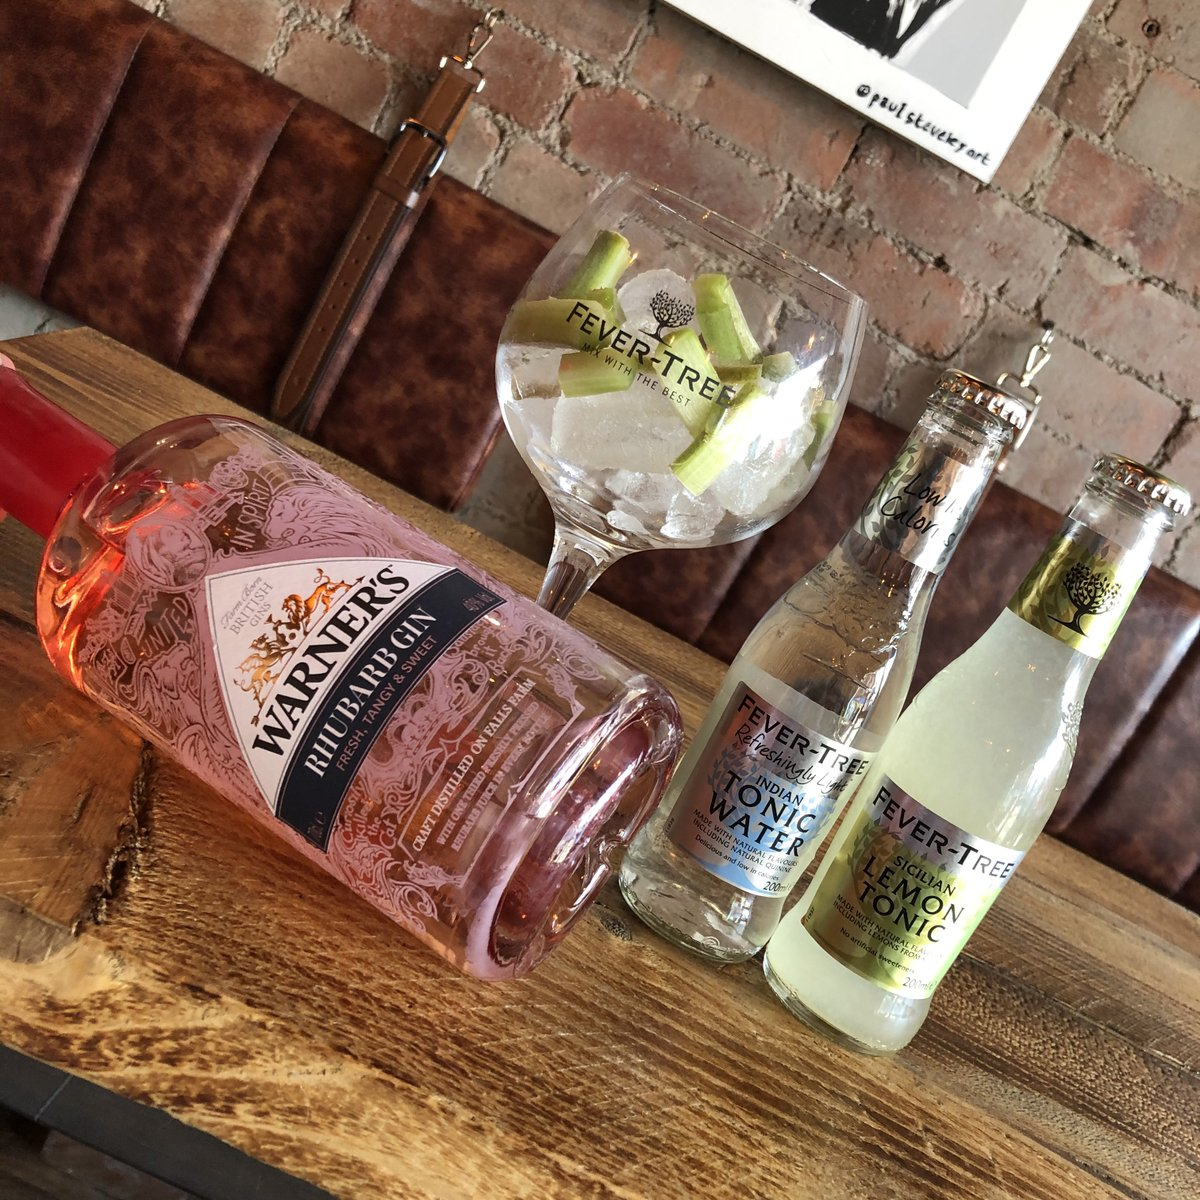 This is our hottest gin this week!   Warner's Distillery   #rhubarb try it will ginger ale!   Double up and receive a free mixer   #gin #ginandtonic #ginbar #ginlovers #ginoclock #ginstagram #gintonic #sheffieldissuper #hillsboroughpic.twitter.com/cy8OXwmI3e